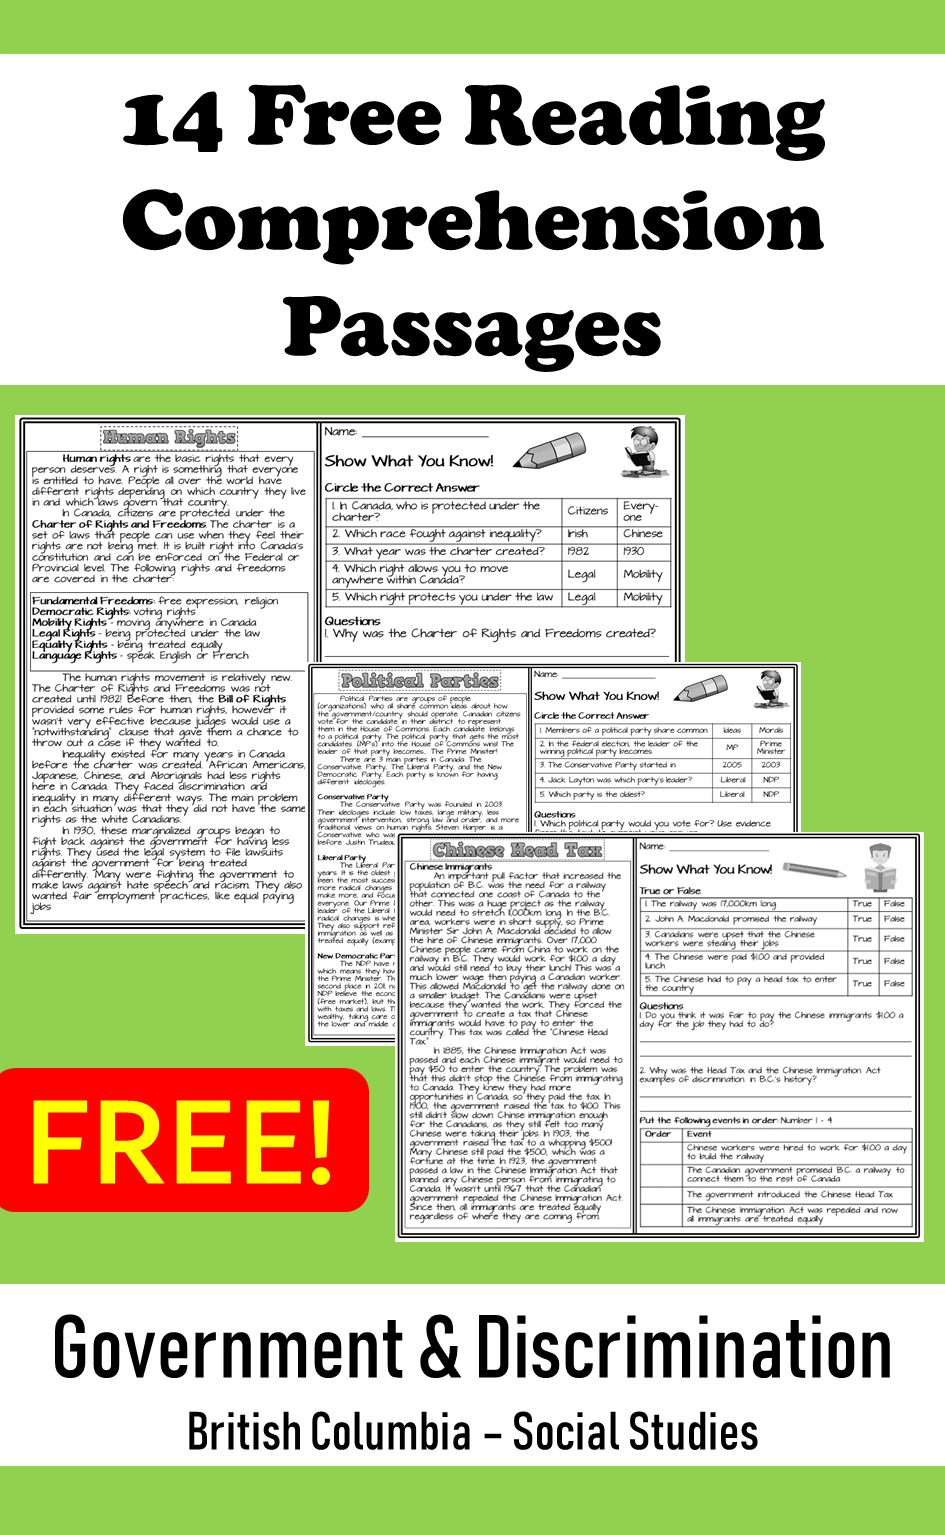 14 Free Reading Comprehension Passages for British Columbia Social Studies    Reading comprehension passages [ 1535 x 945 Pixel ]